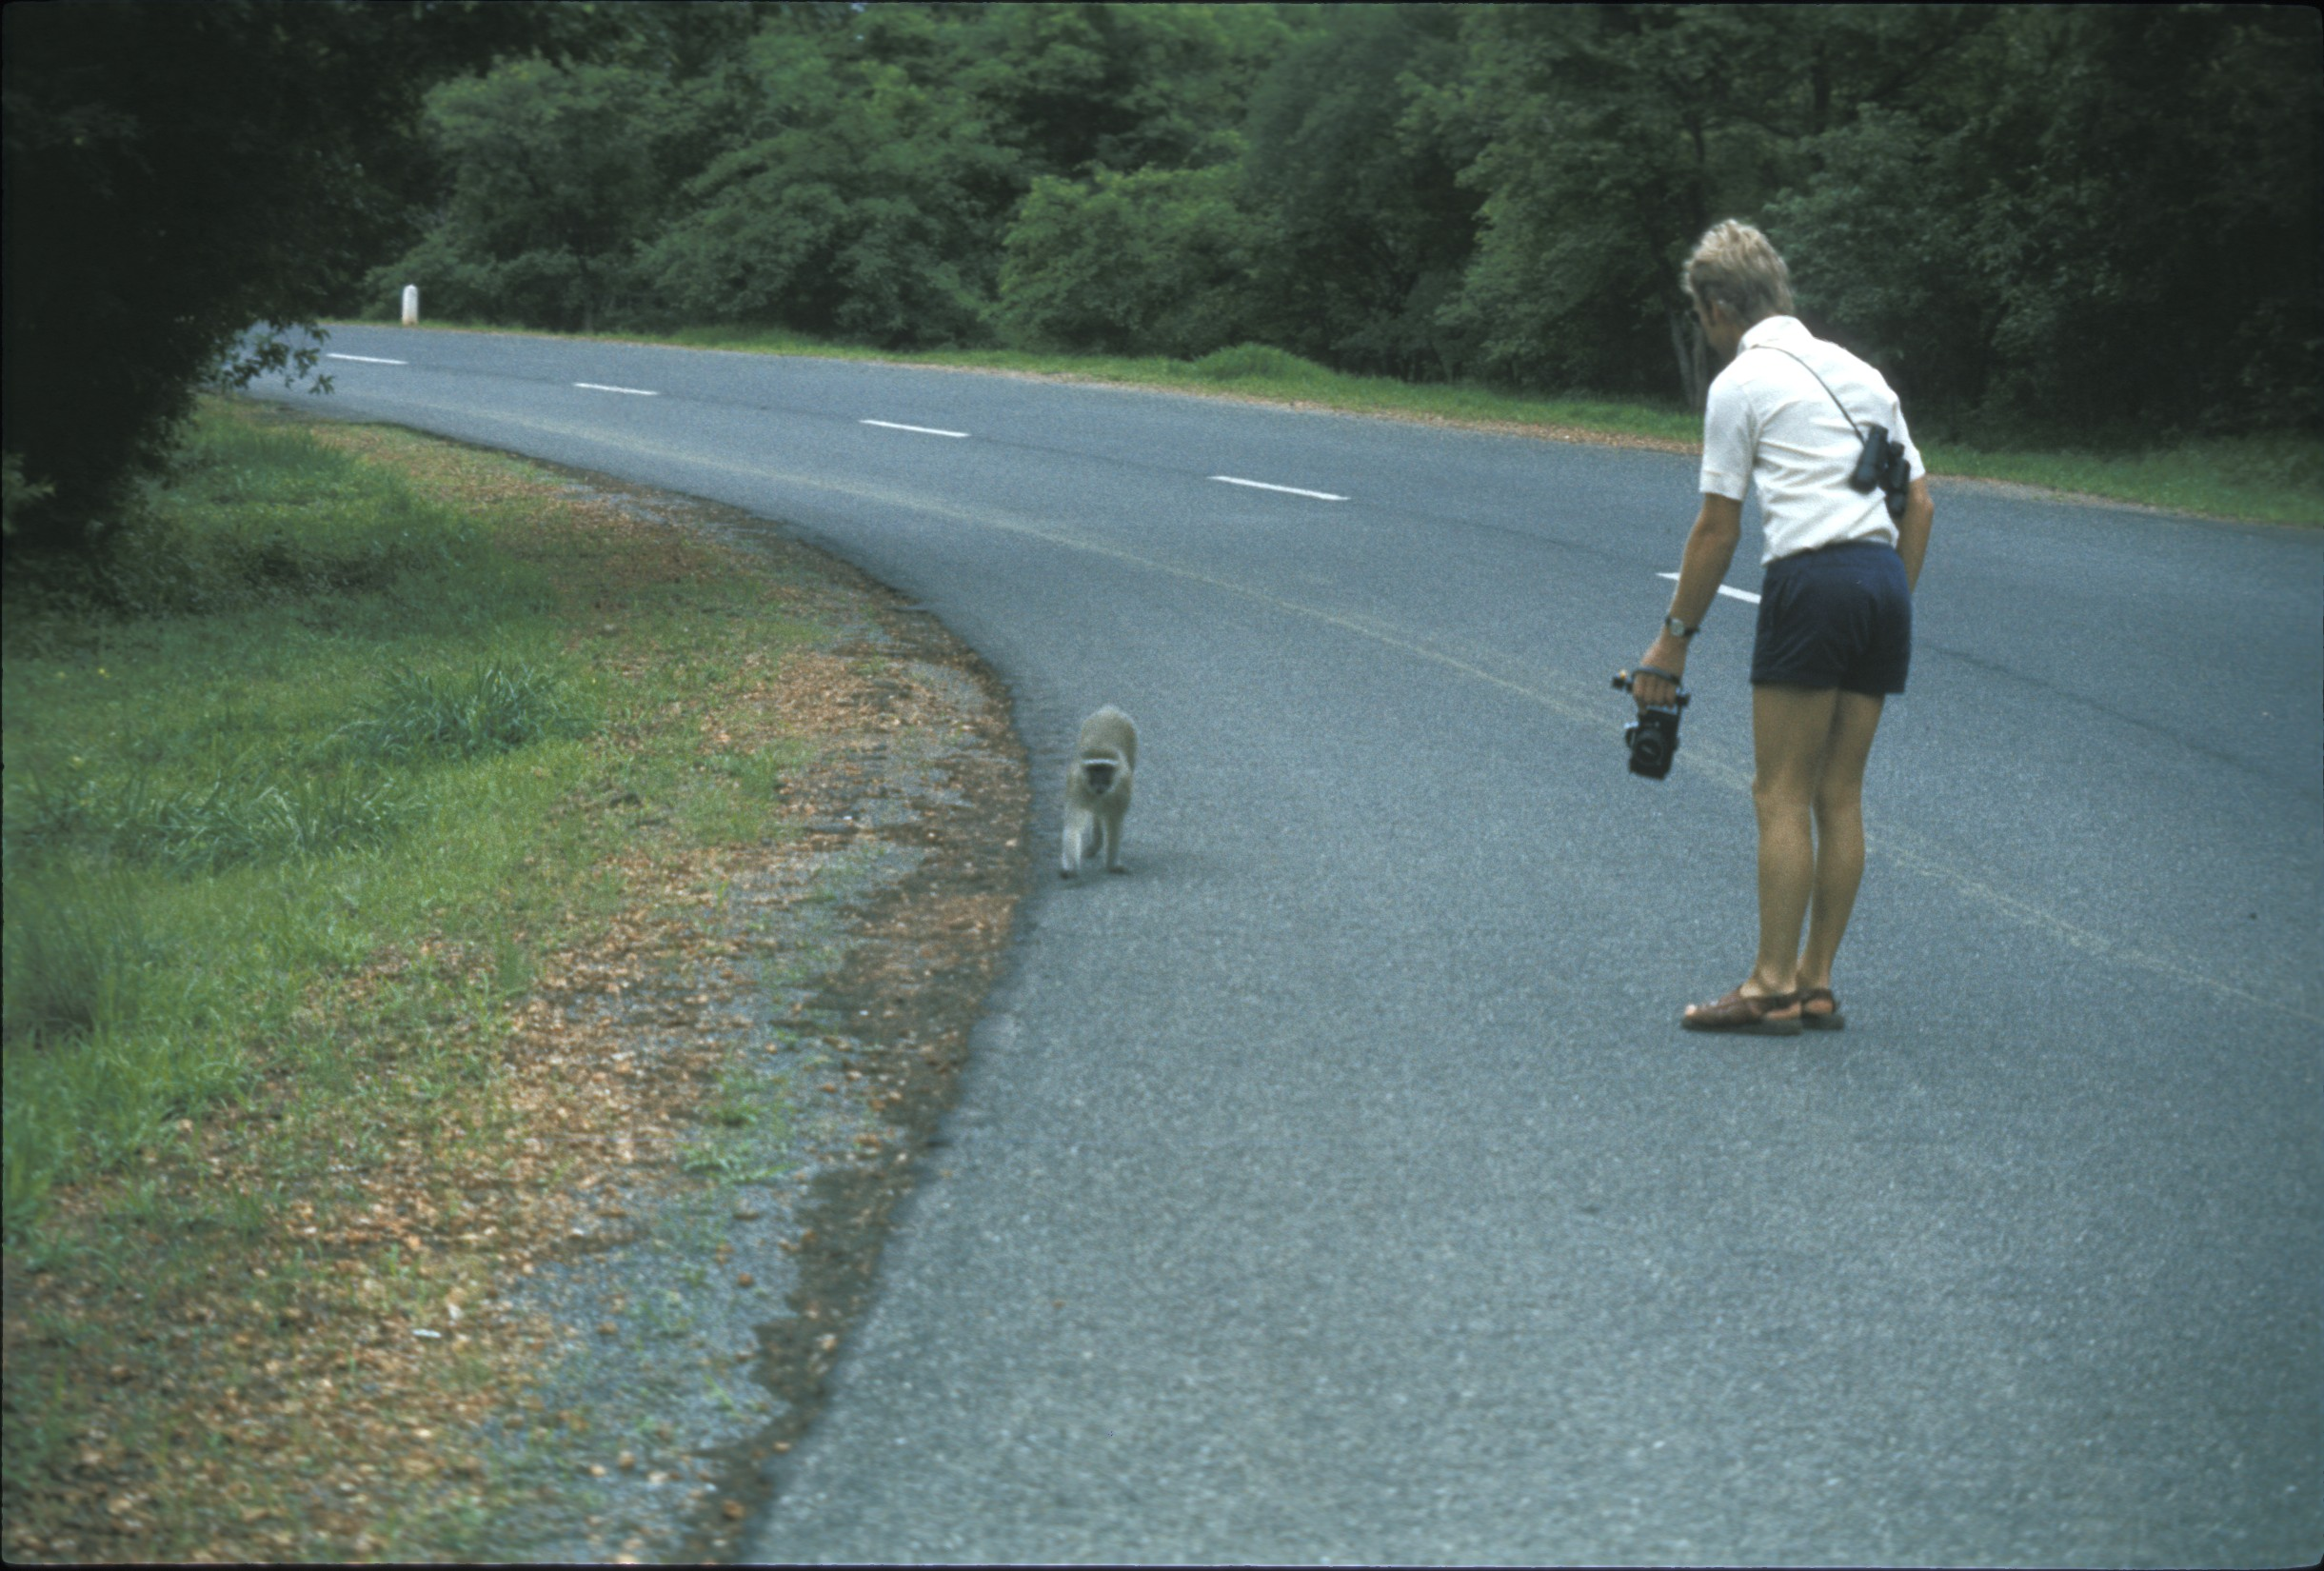 Well he was walking casually down the road! Cheeky monkey!